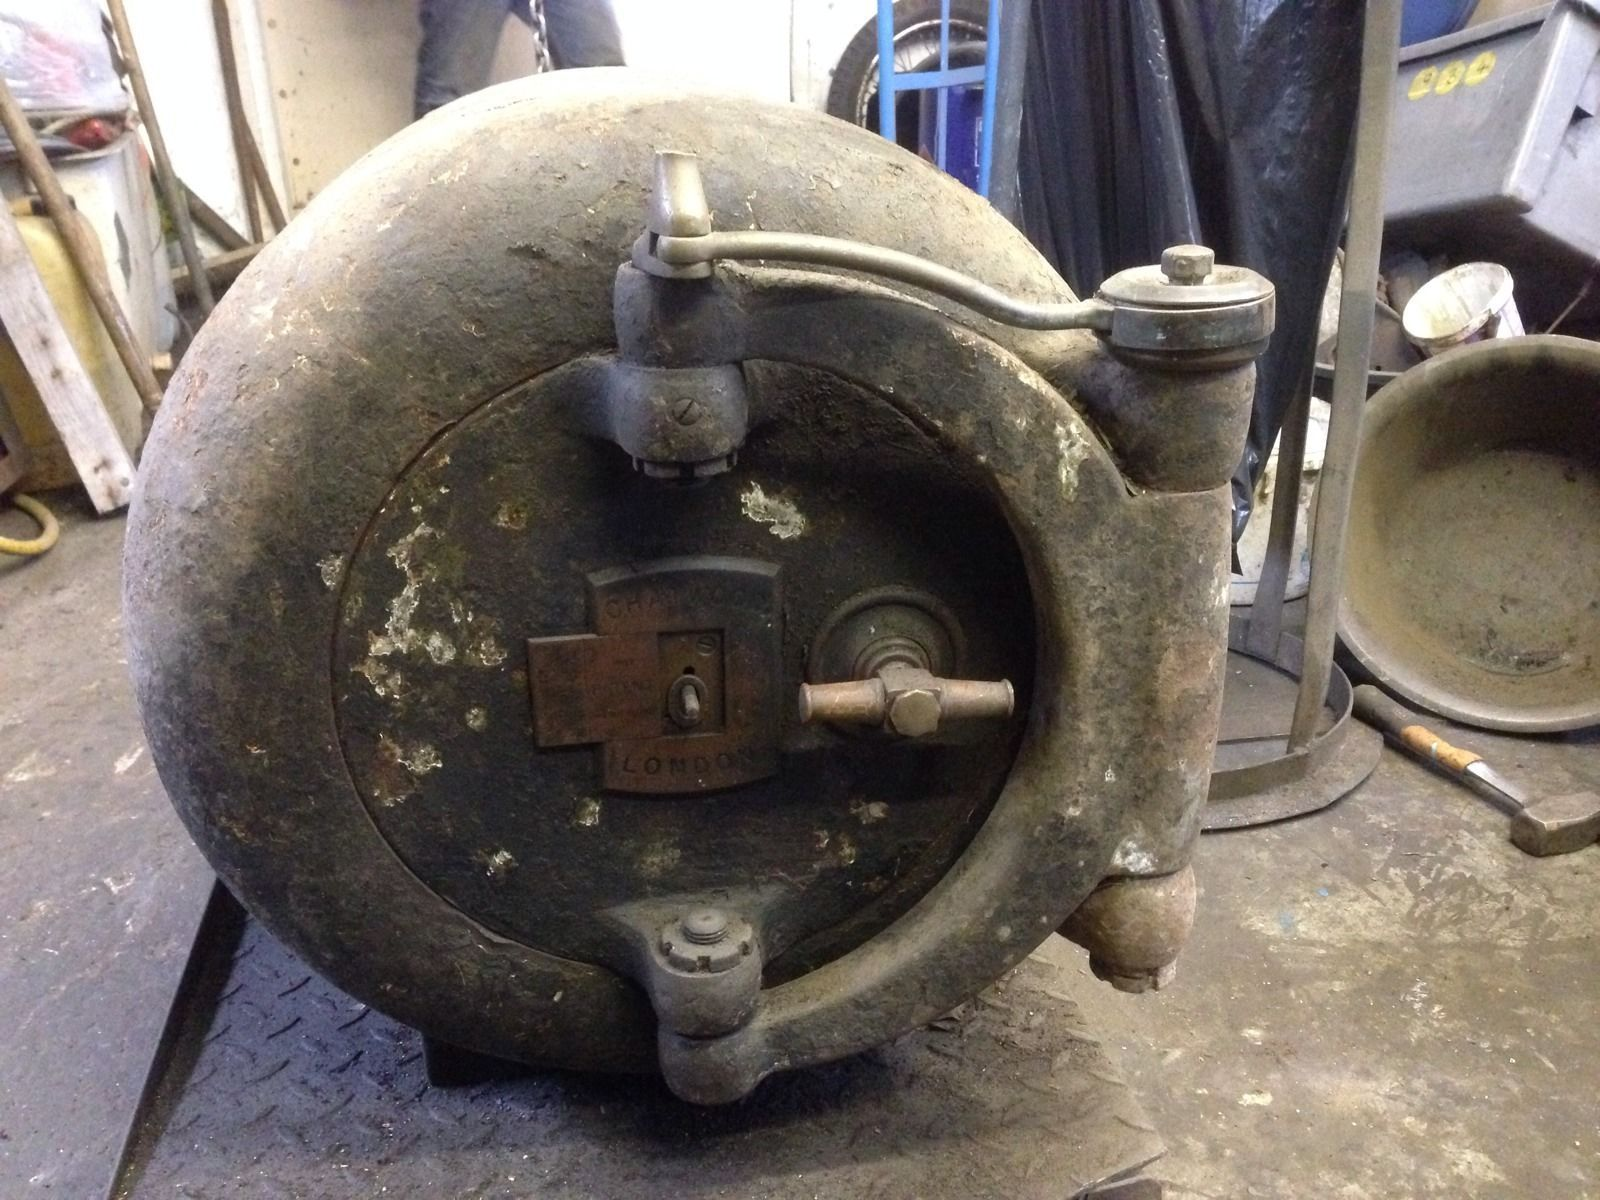 Old Safe Chatwood London Cannon Ball Safe Dated 1921 Cylinder Safe in Home Furniture u0026 : cannonball doors - pezcame.com